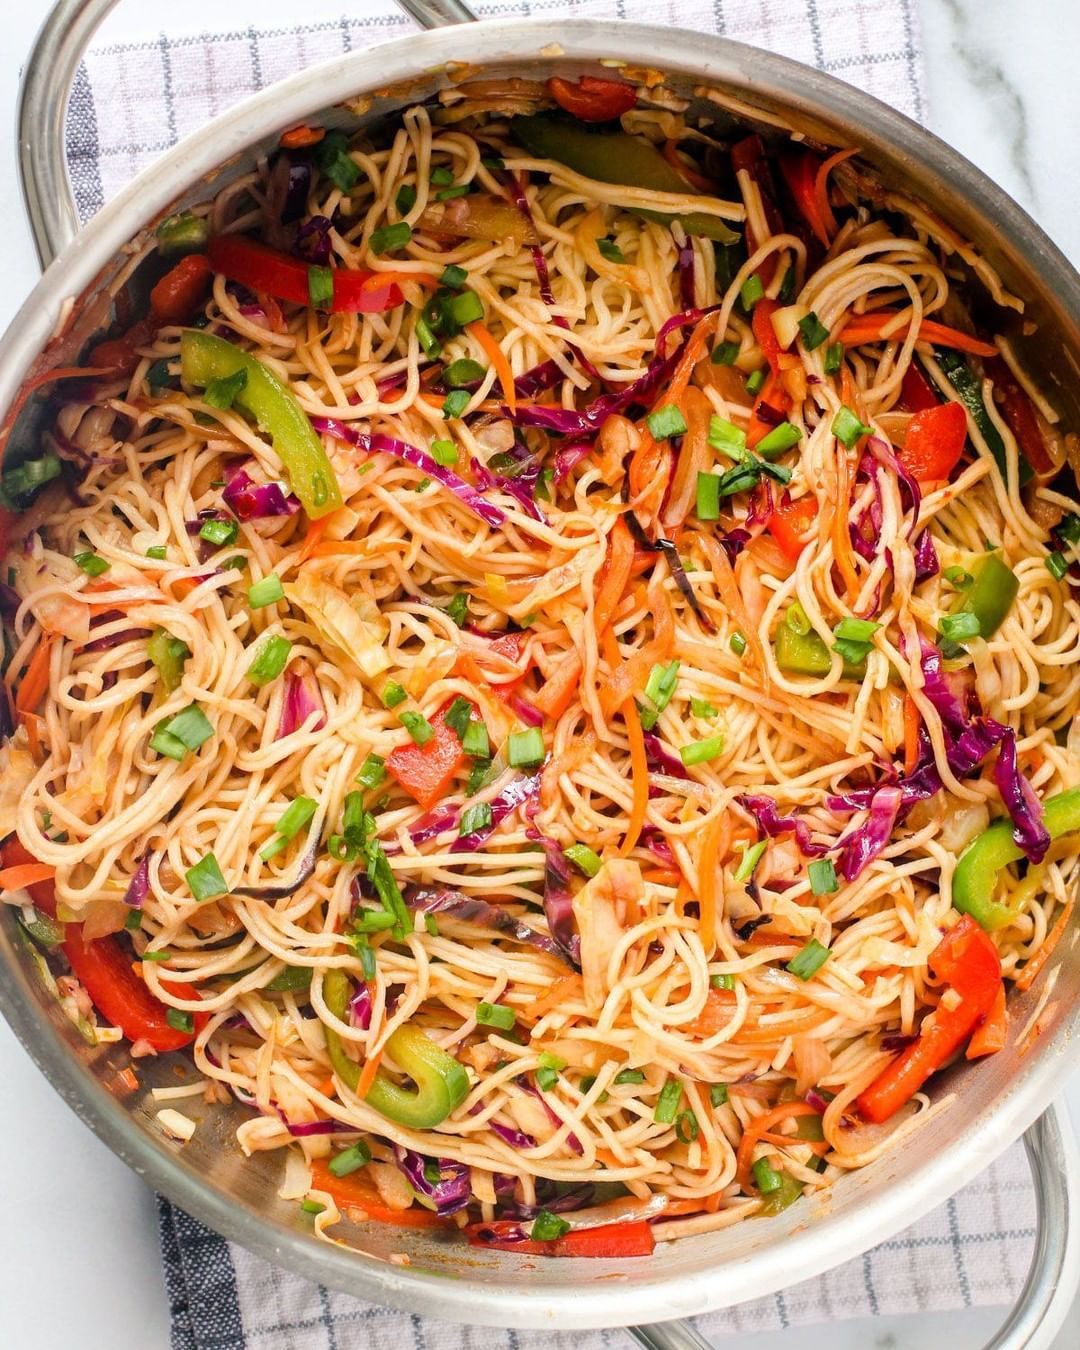 Ministryofcurry Posted To Instagram A Giant Wok Of Happiness Do You Love Hakka Noodles We Do And I In 2020 Vegetarian Chinese Recipes Indian Food Recipes Recipes